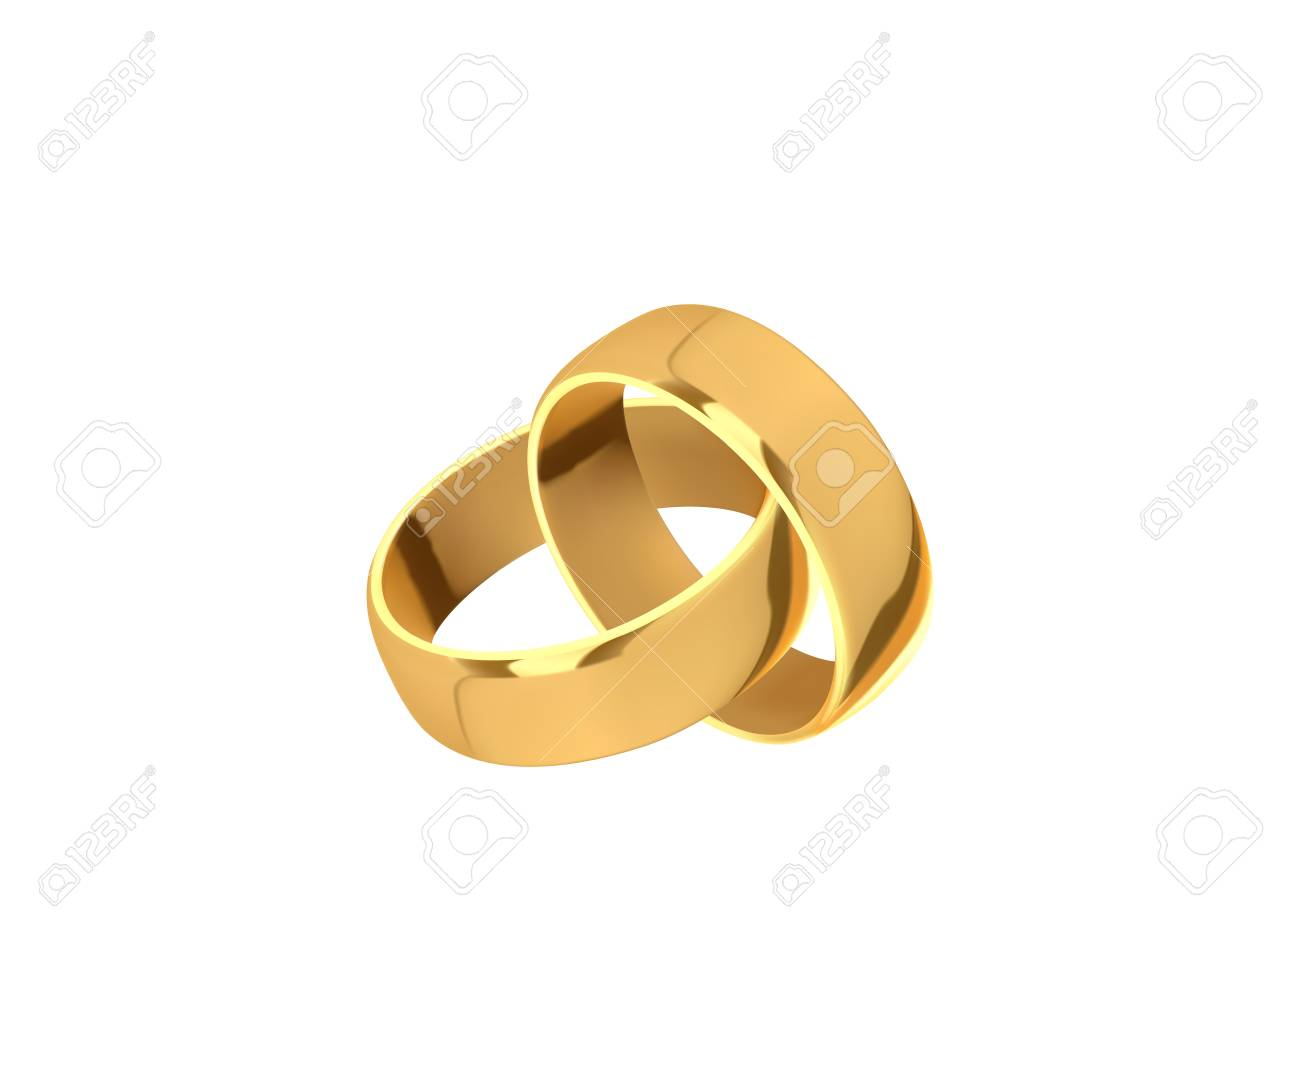 Design Wedding Ring   Golden Wedding Rings Realistic Design Isolated On White Background